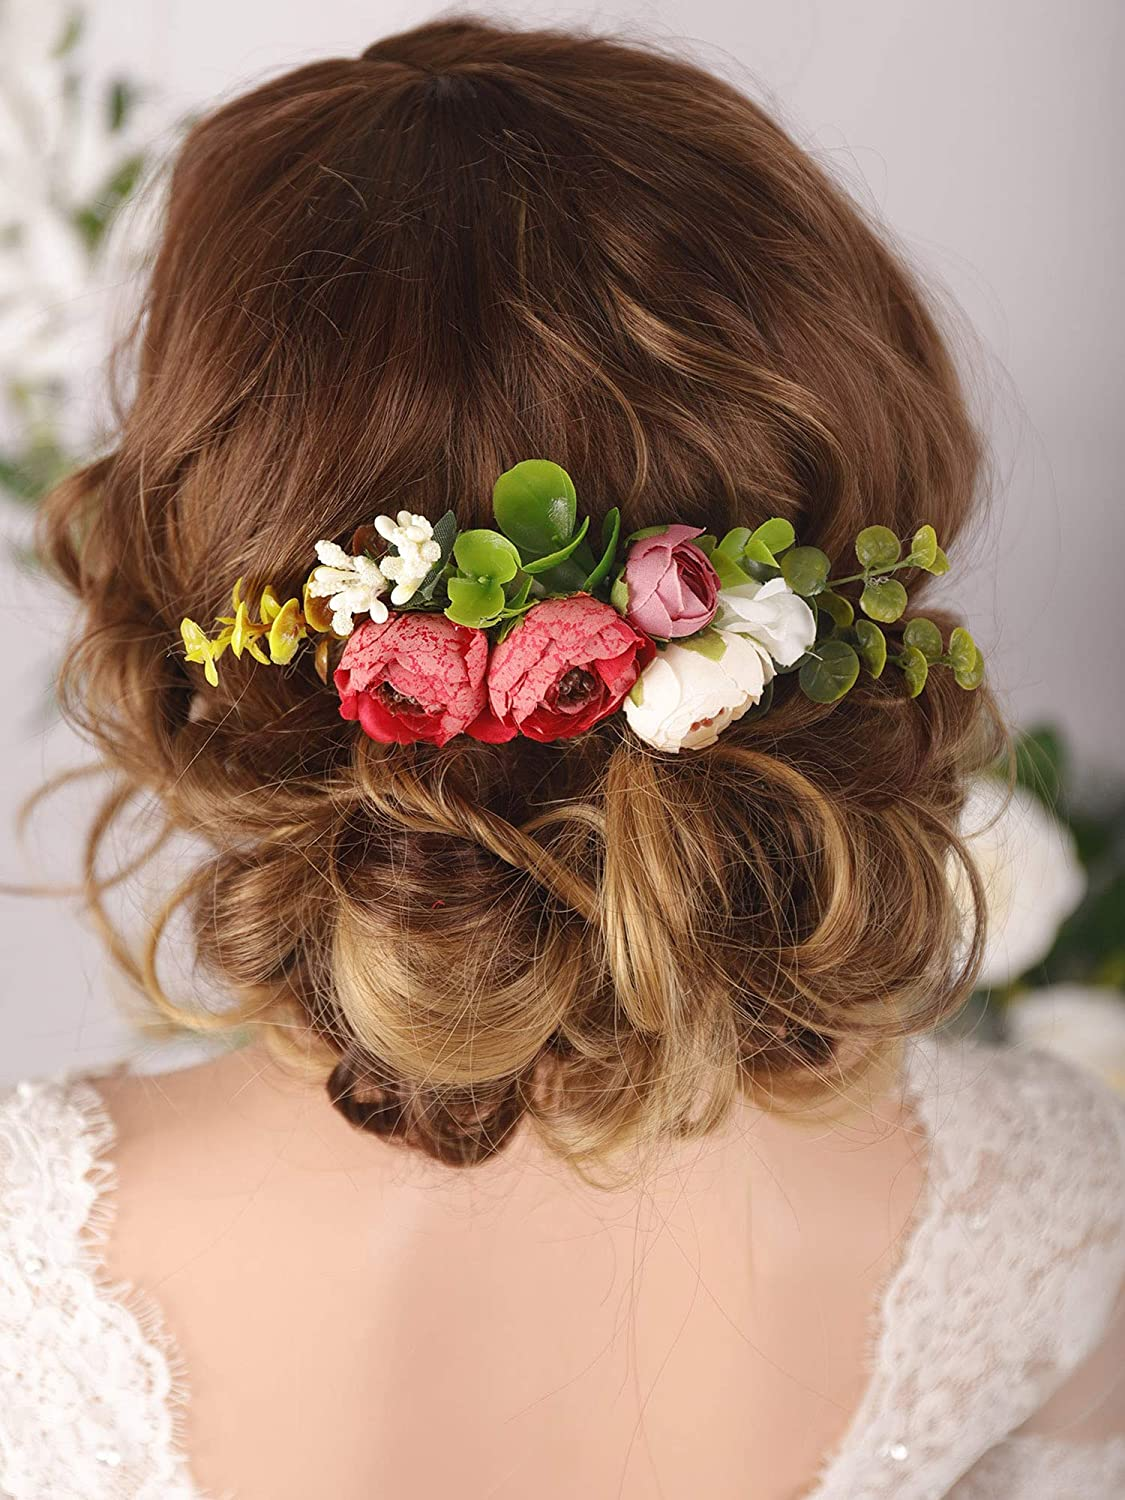 Kercisbeauty 40% OFF Cheap Sale Bridal Floral OFFicial site Red Rose Combs Wedding Hair Ha Flower